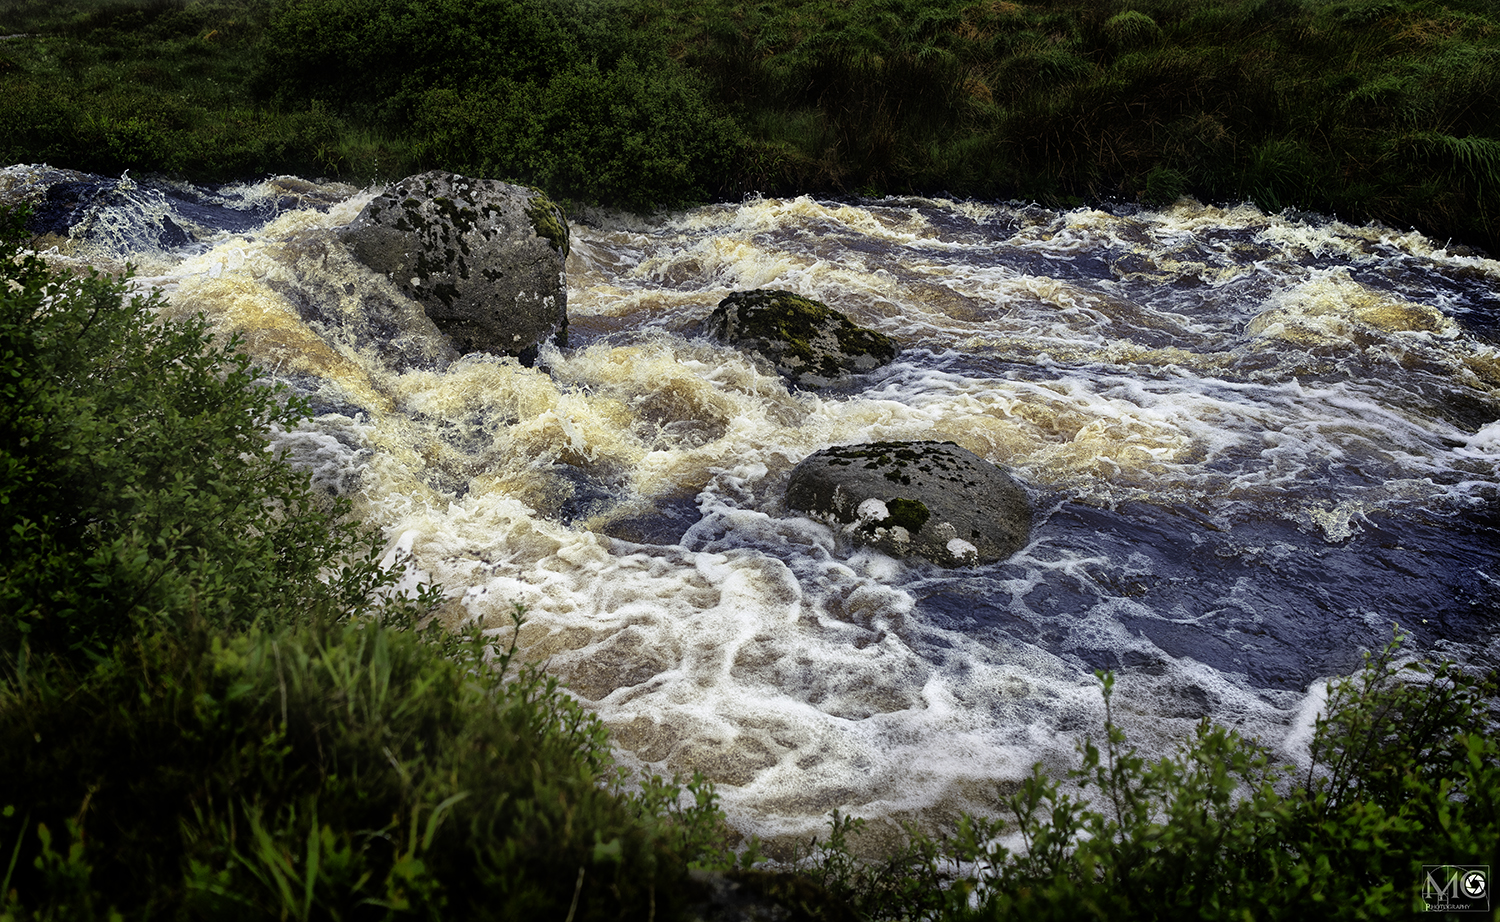 A river after the rain in in Co. Donegal, Ireland.